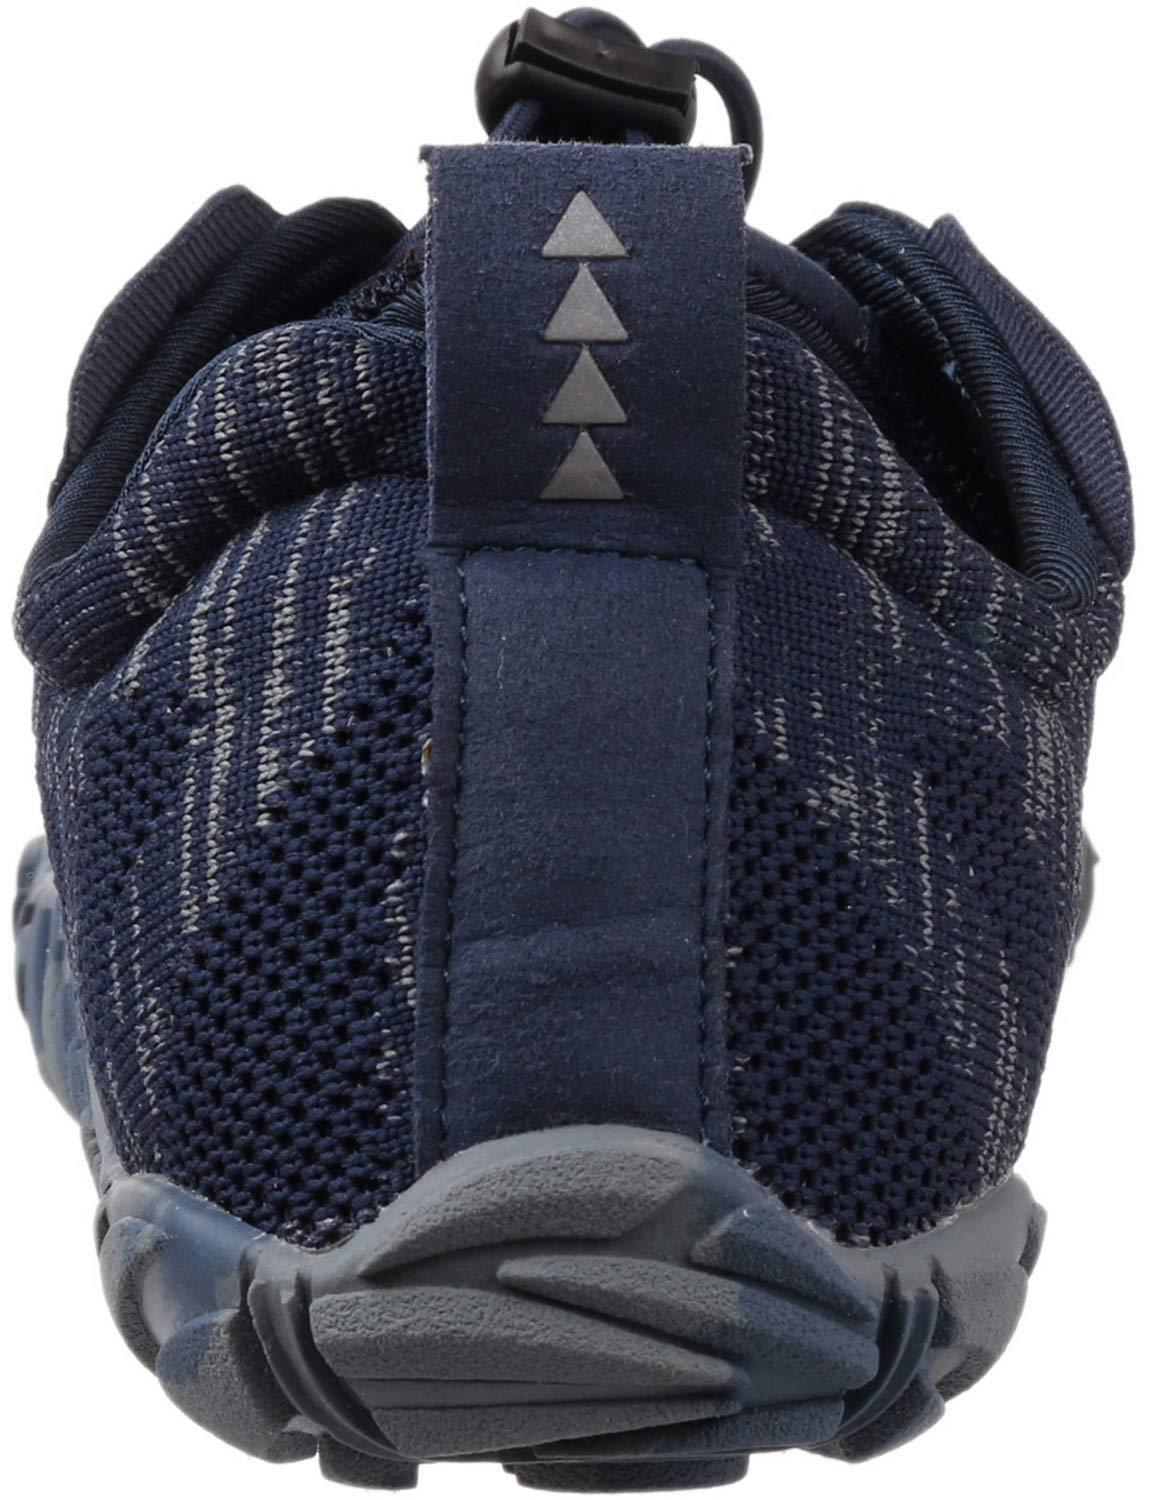 WHITIN Men's Cross-Trainer | Barefoot & Minimalist Shoe | Zero Drop | Wide Toe Box | Five Fingers | Gym Fitness Workout Trail Running | Male Blue | Size 8 by WHITIN (Image #4)